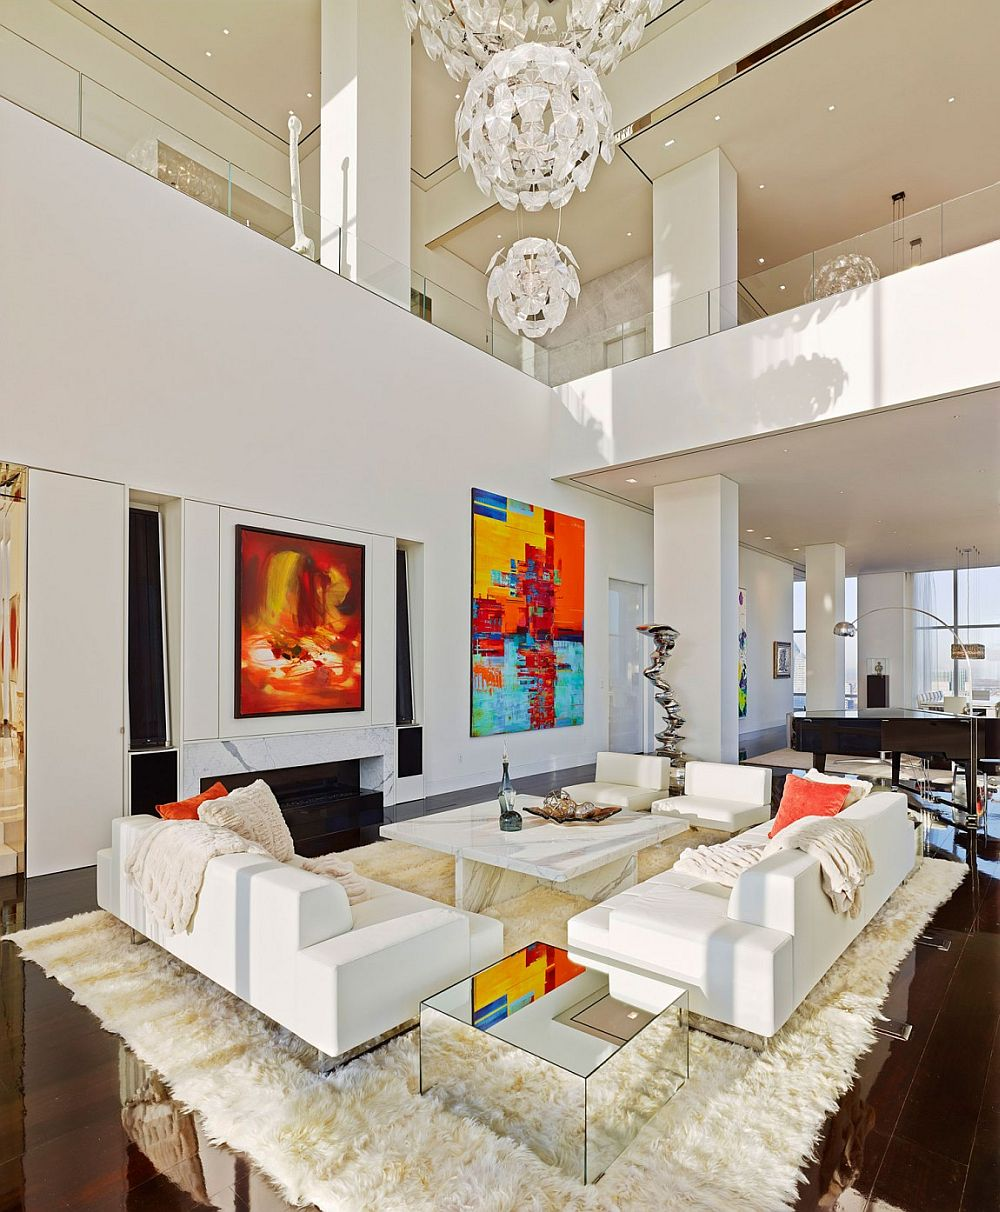 Apartments New York: Breathtaking New York City Penthouse Leaves You Awestruck